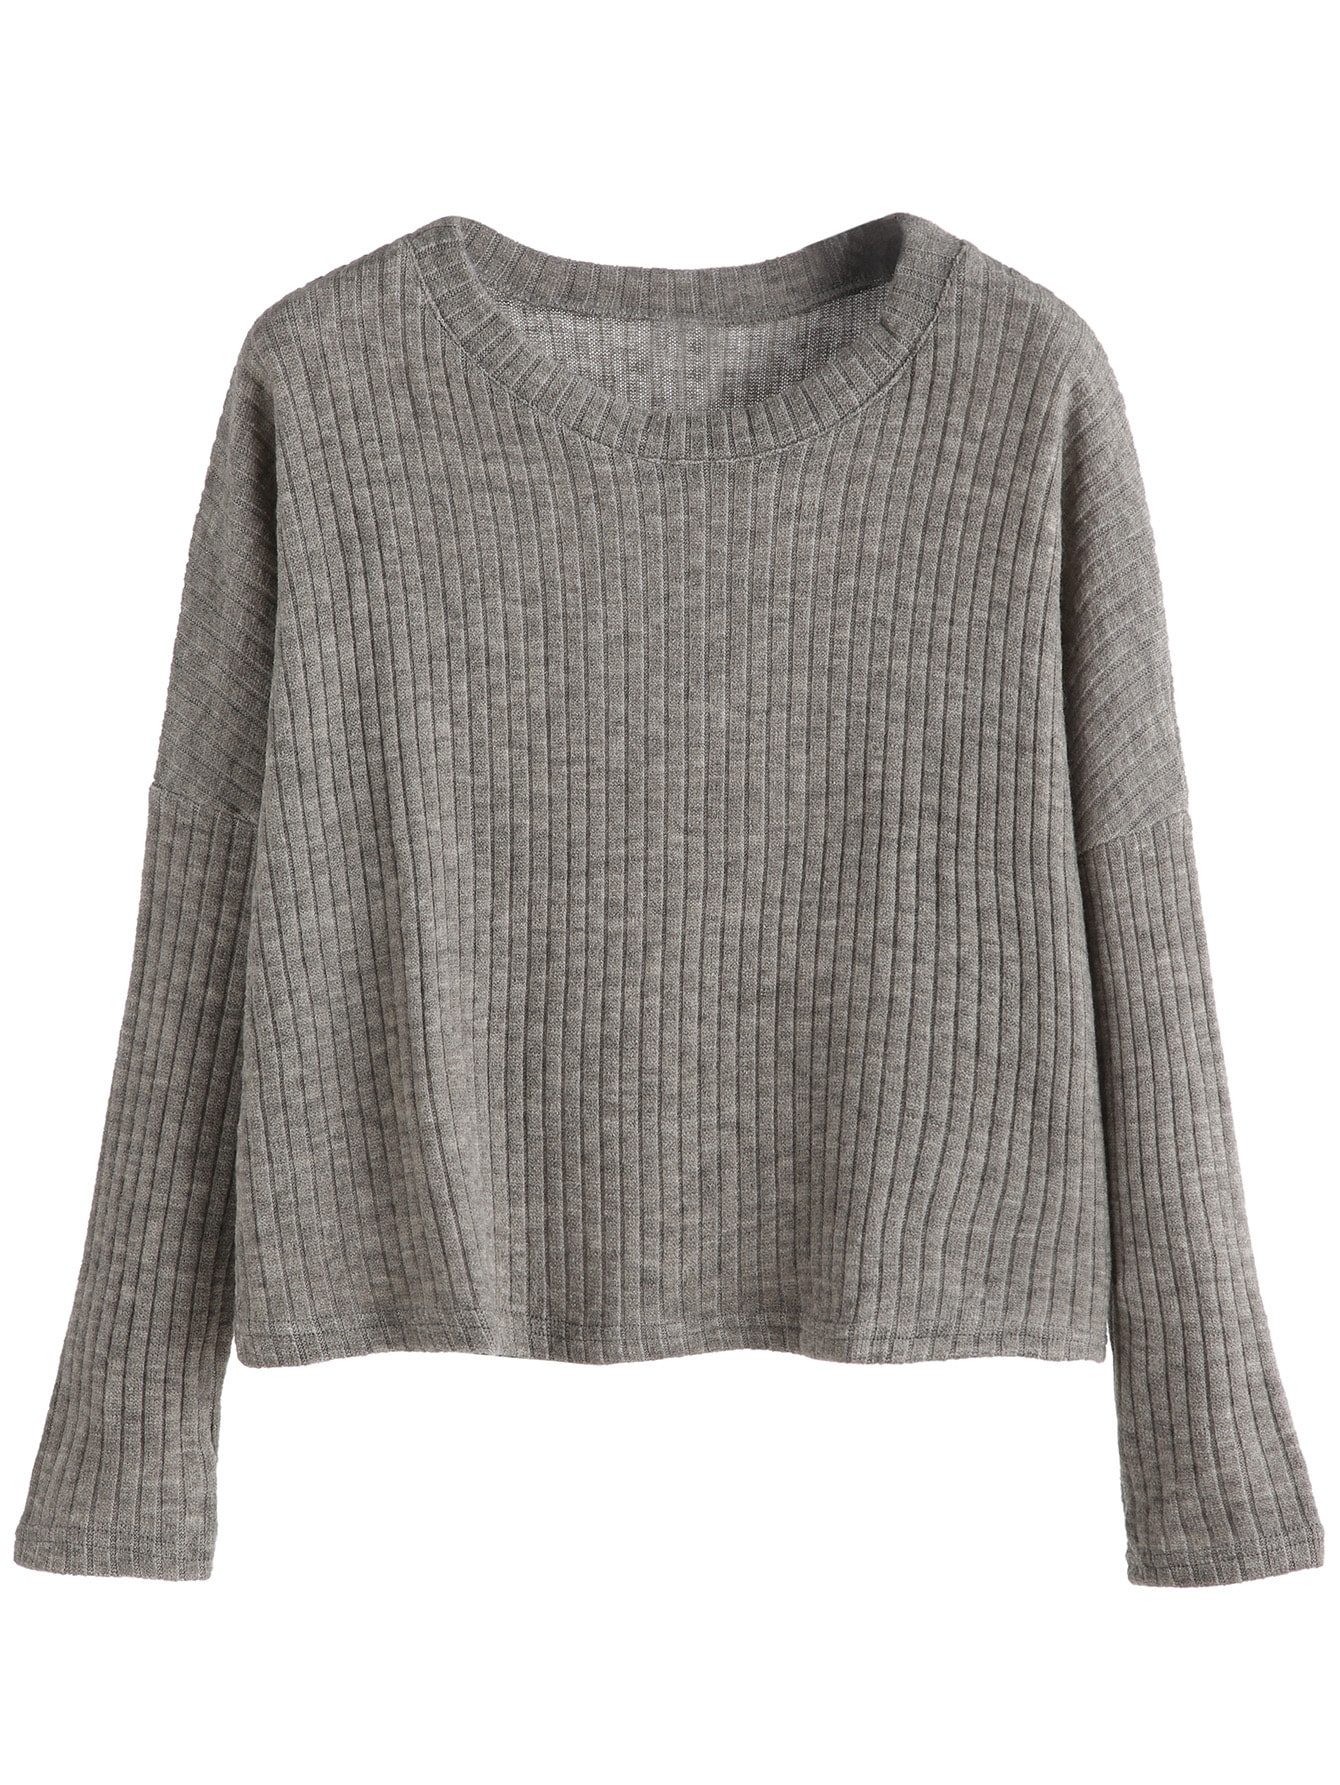 Grey Dropped Shoulder Seam Ribbed Sweater